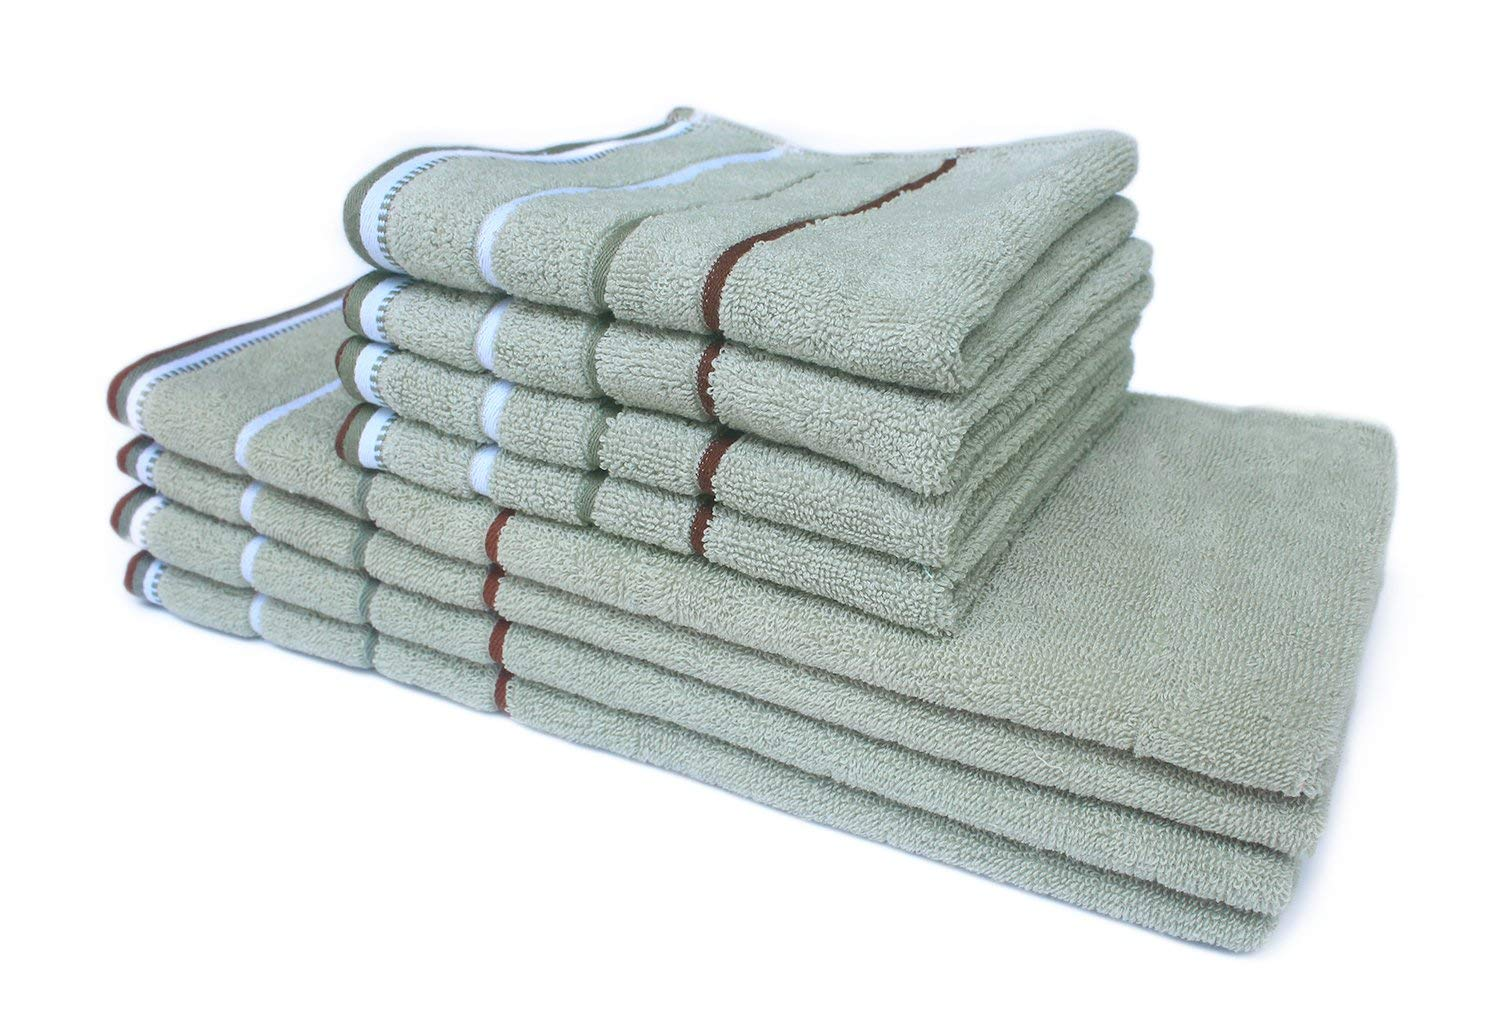 """Honla 8-Piece Cotton Hand Towels and Washcloths Set with Striped Pattern,4 Face Towels and 4 Wash Cloths,28""""x13"""" & 13""""x13"""",High Absorbent,Sage Green"""